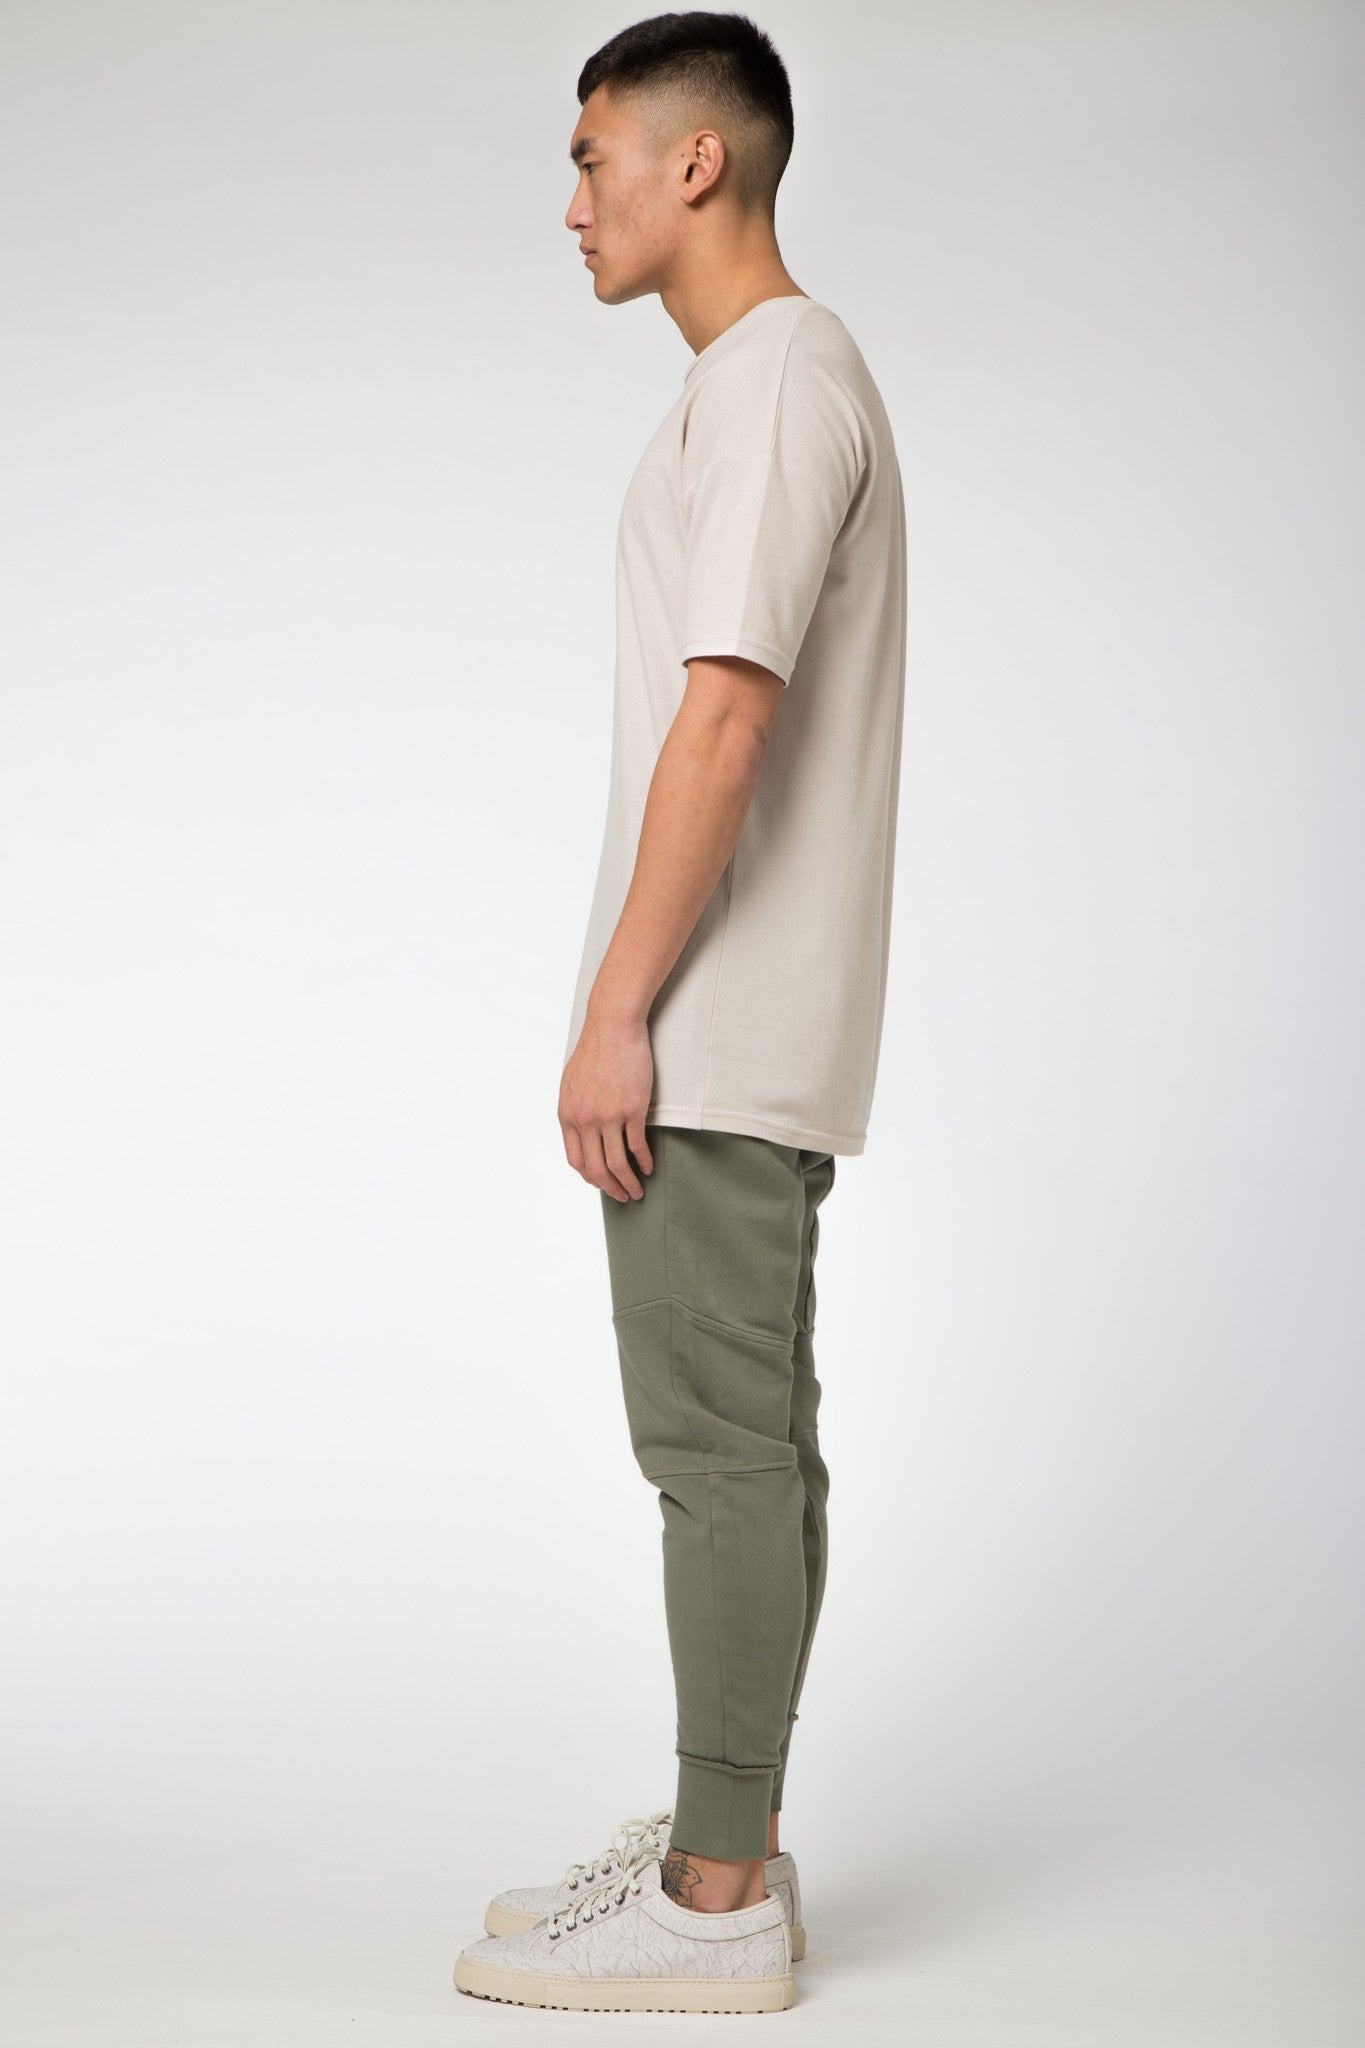 Avid & Co. [ Oversize ] Tee Light Taupe